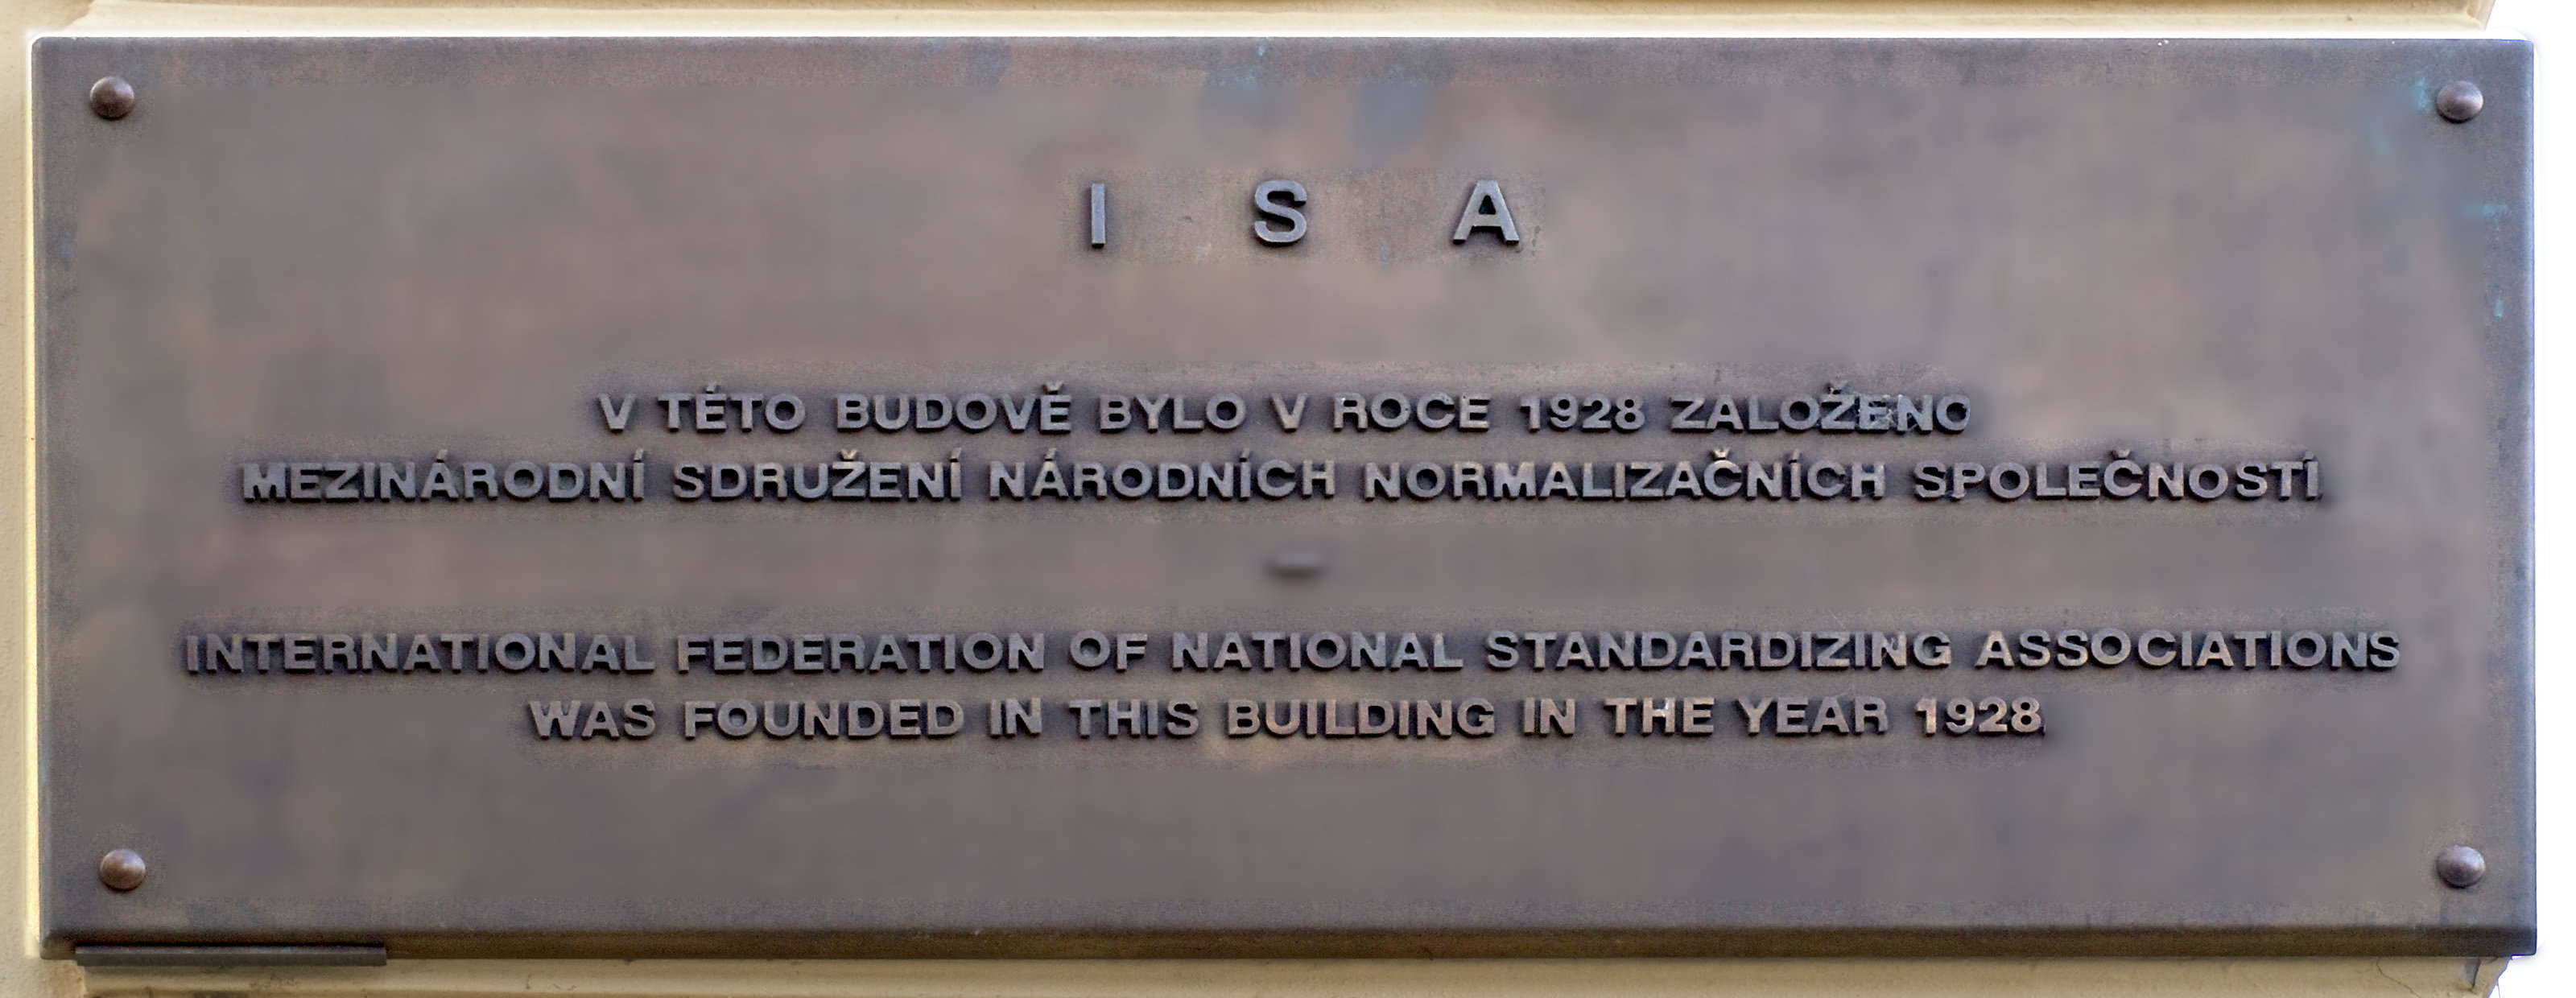 memory plaque of founding isa in prague cropped.jpg